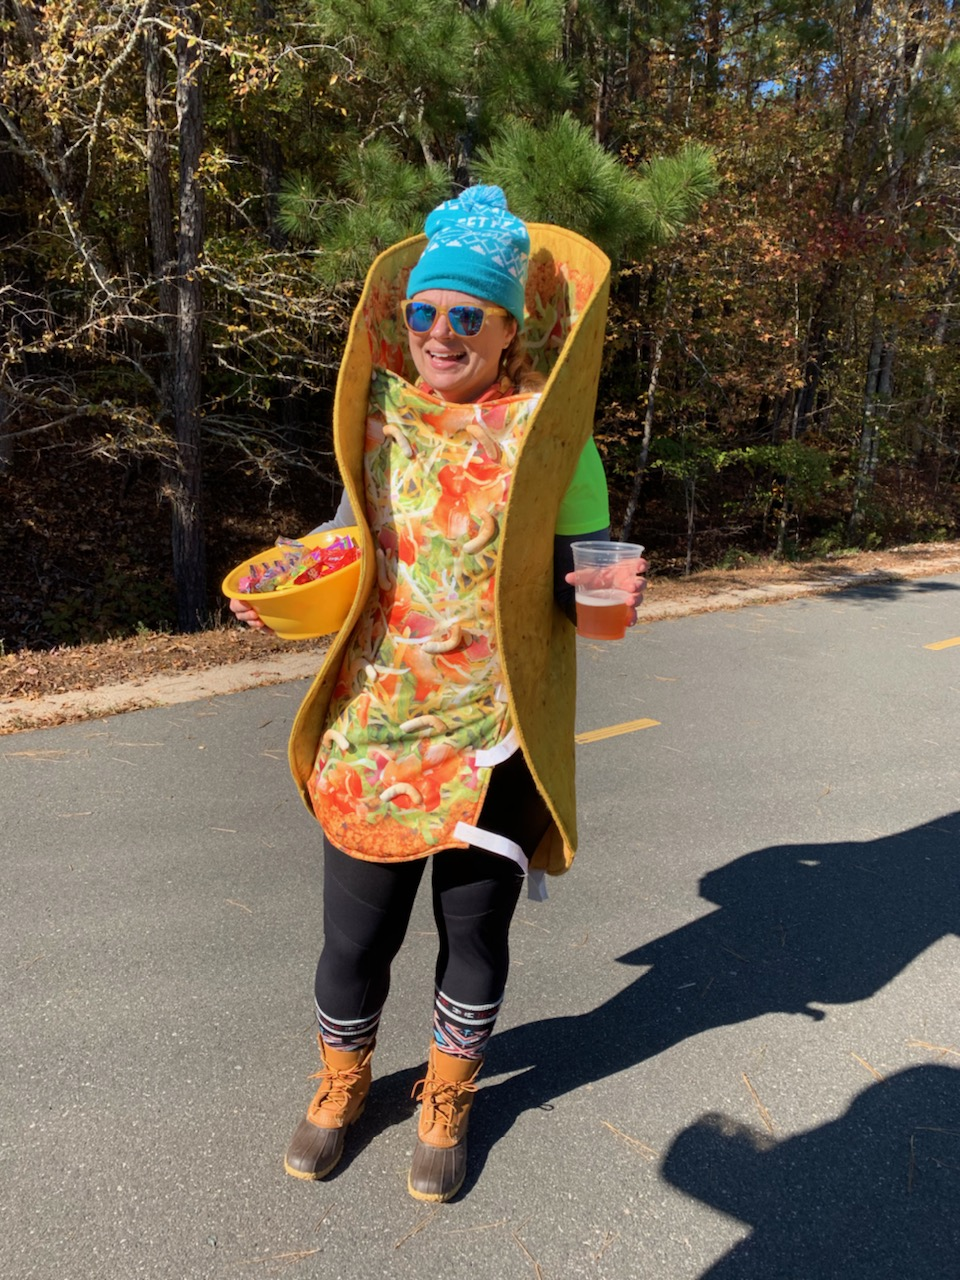 Yup, that's my friend Heather. Cheering on a marathon in a taco outfit. With a beer. And a bowl full of candy dicks. Heather, you're the best.